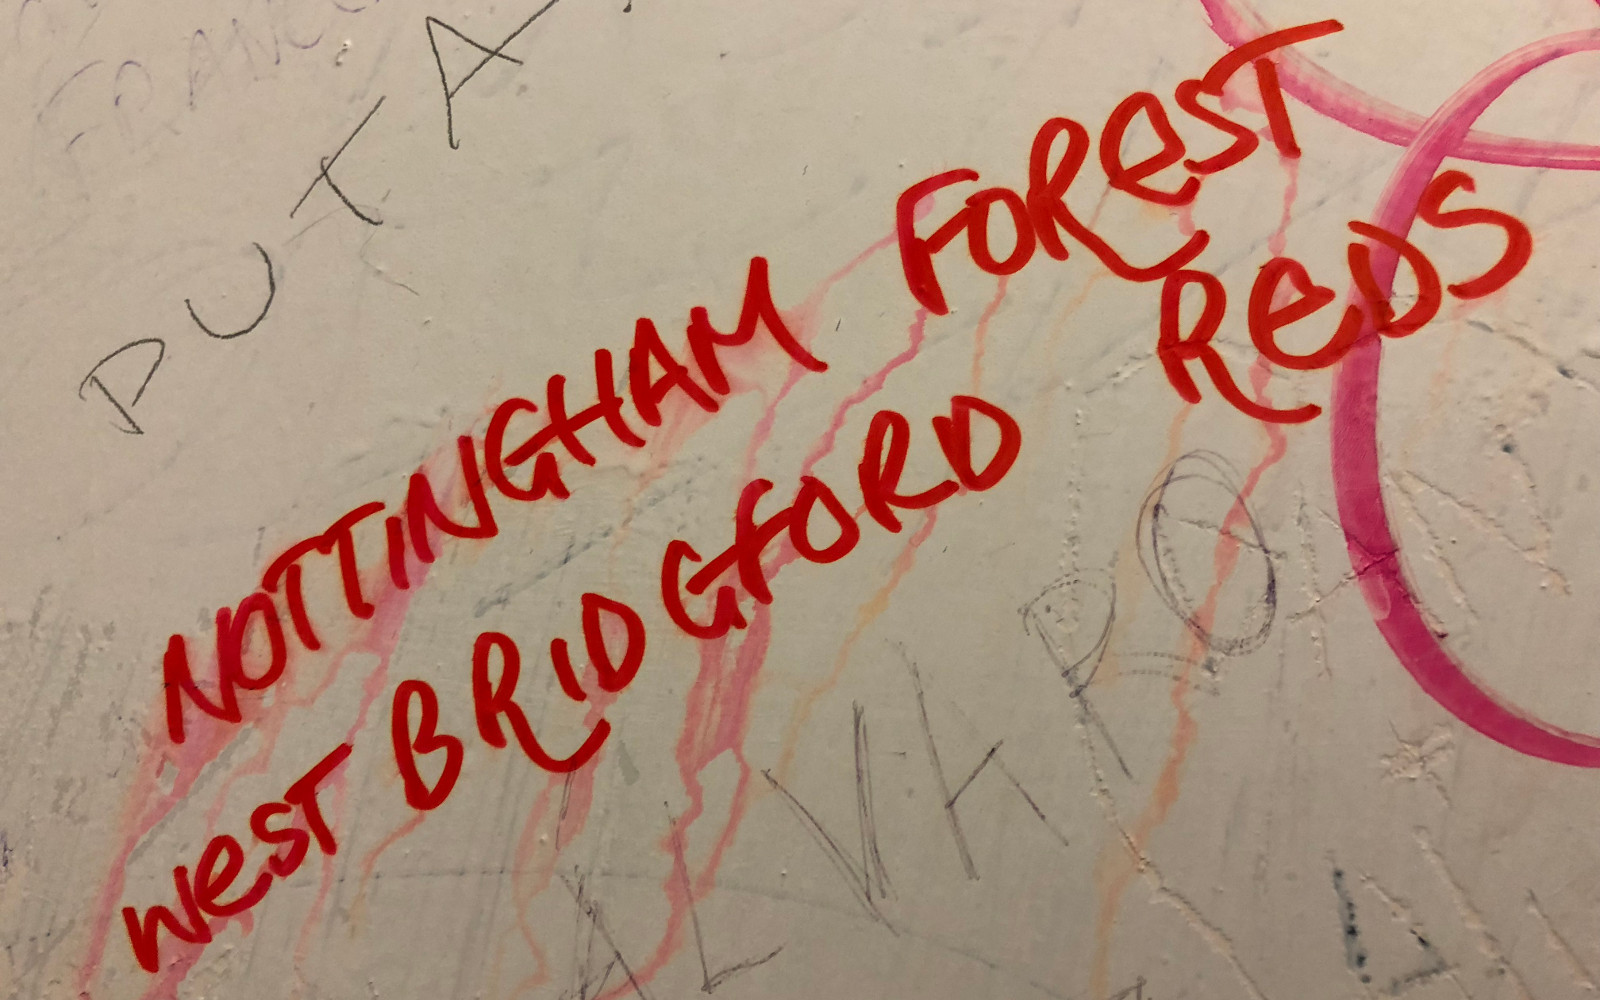 Graffiti in the Colosseum - NOTTINGHAM FOREST WEST BRIDGFORD REDS